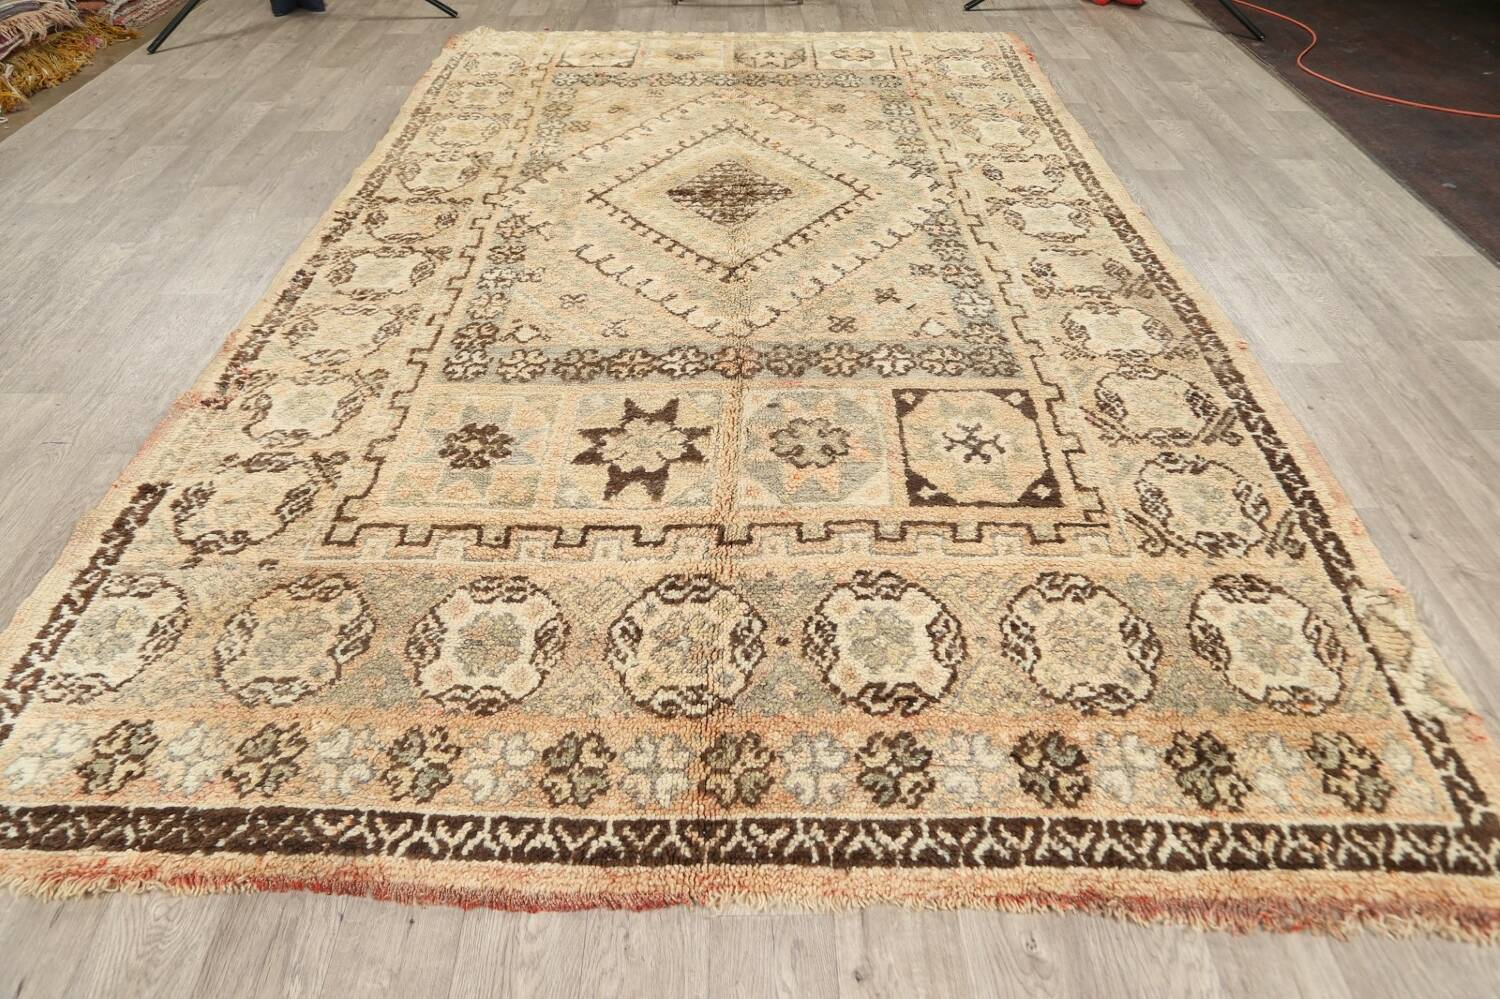 Antique Tribal Moroccan Oriental Area Rug 7x11 image 13